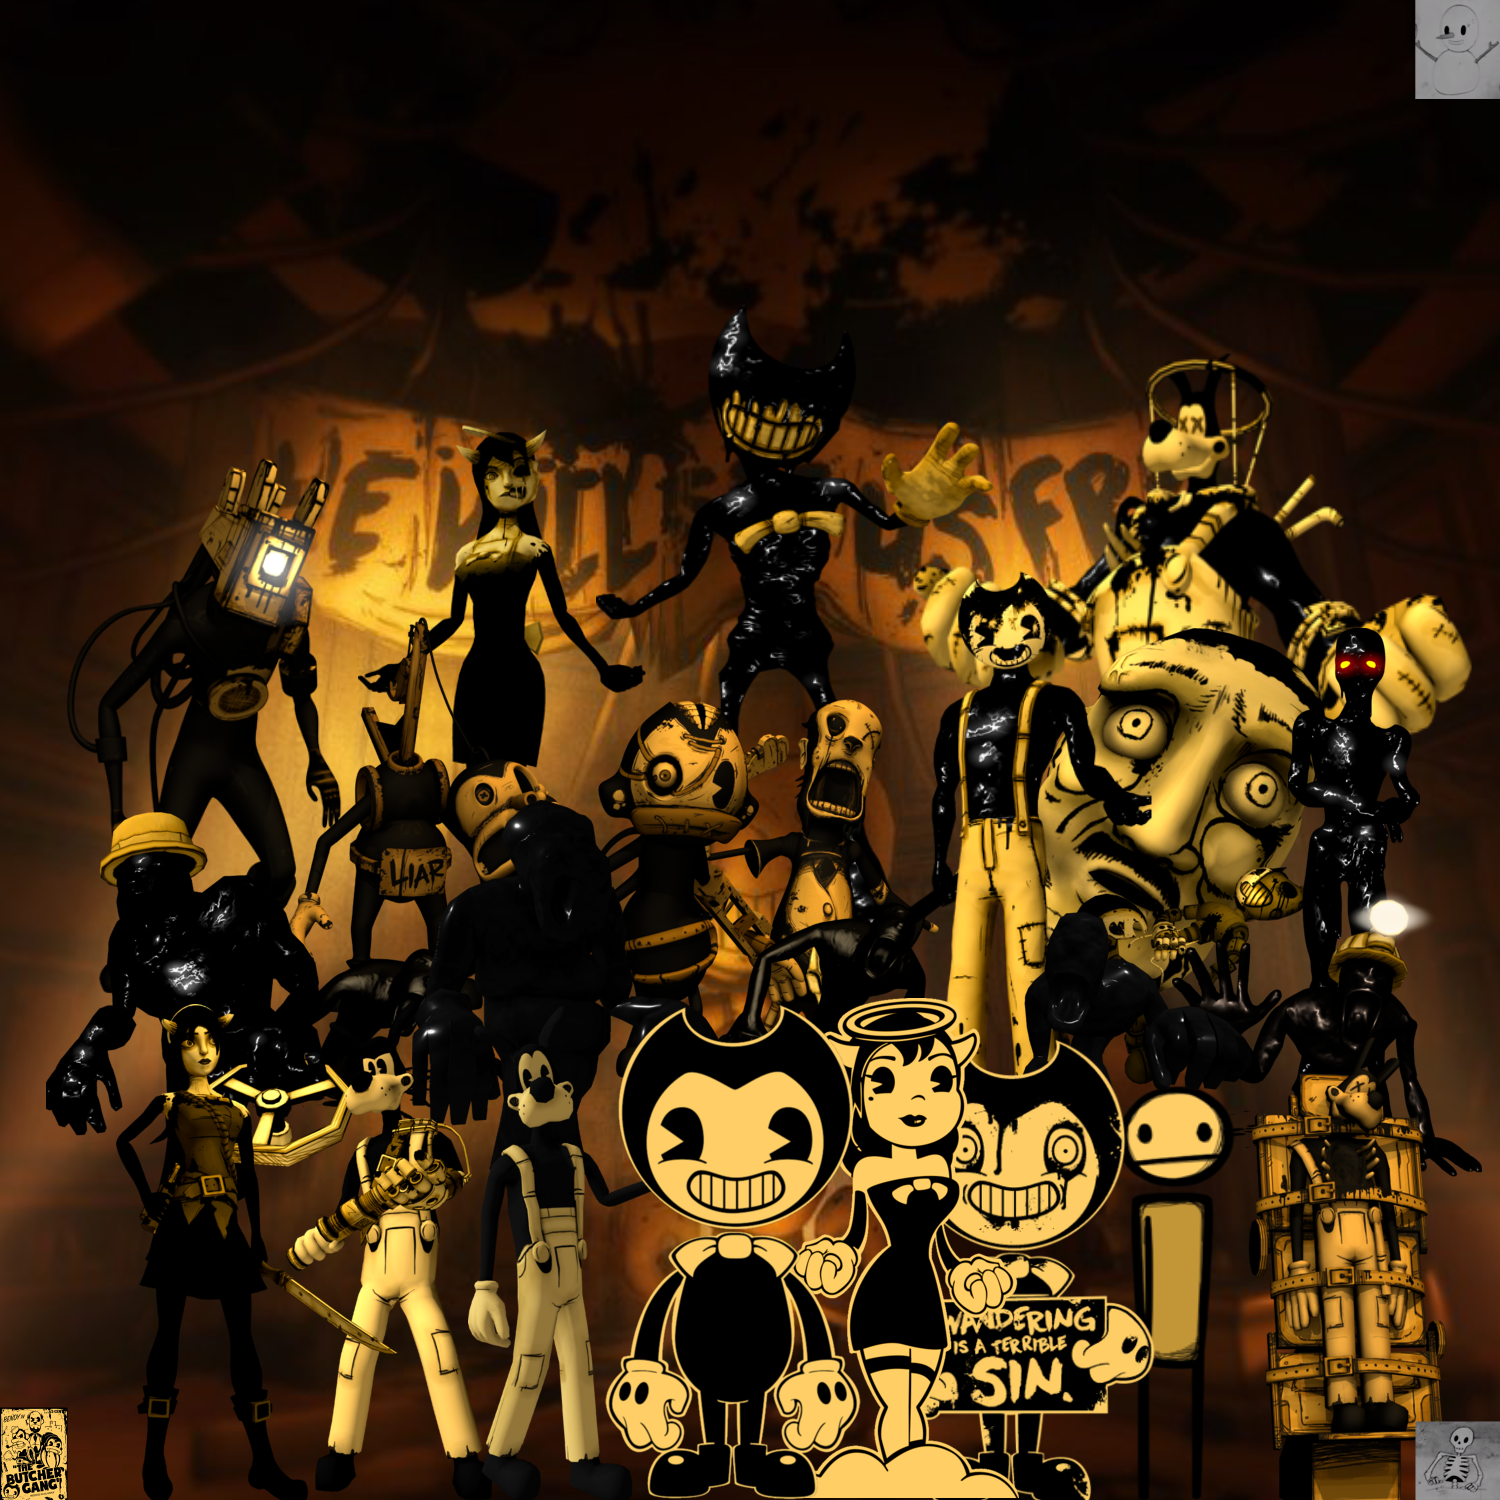 All The Characters Of Bendy And The Ink Machine By Creper64